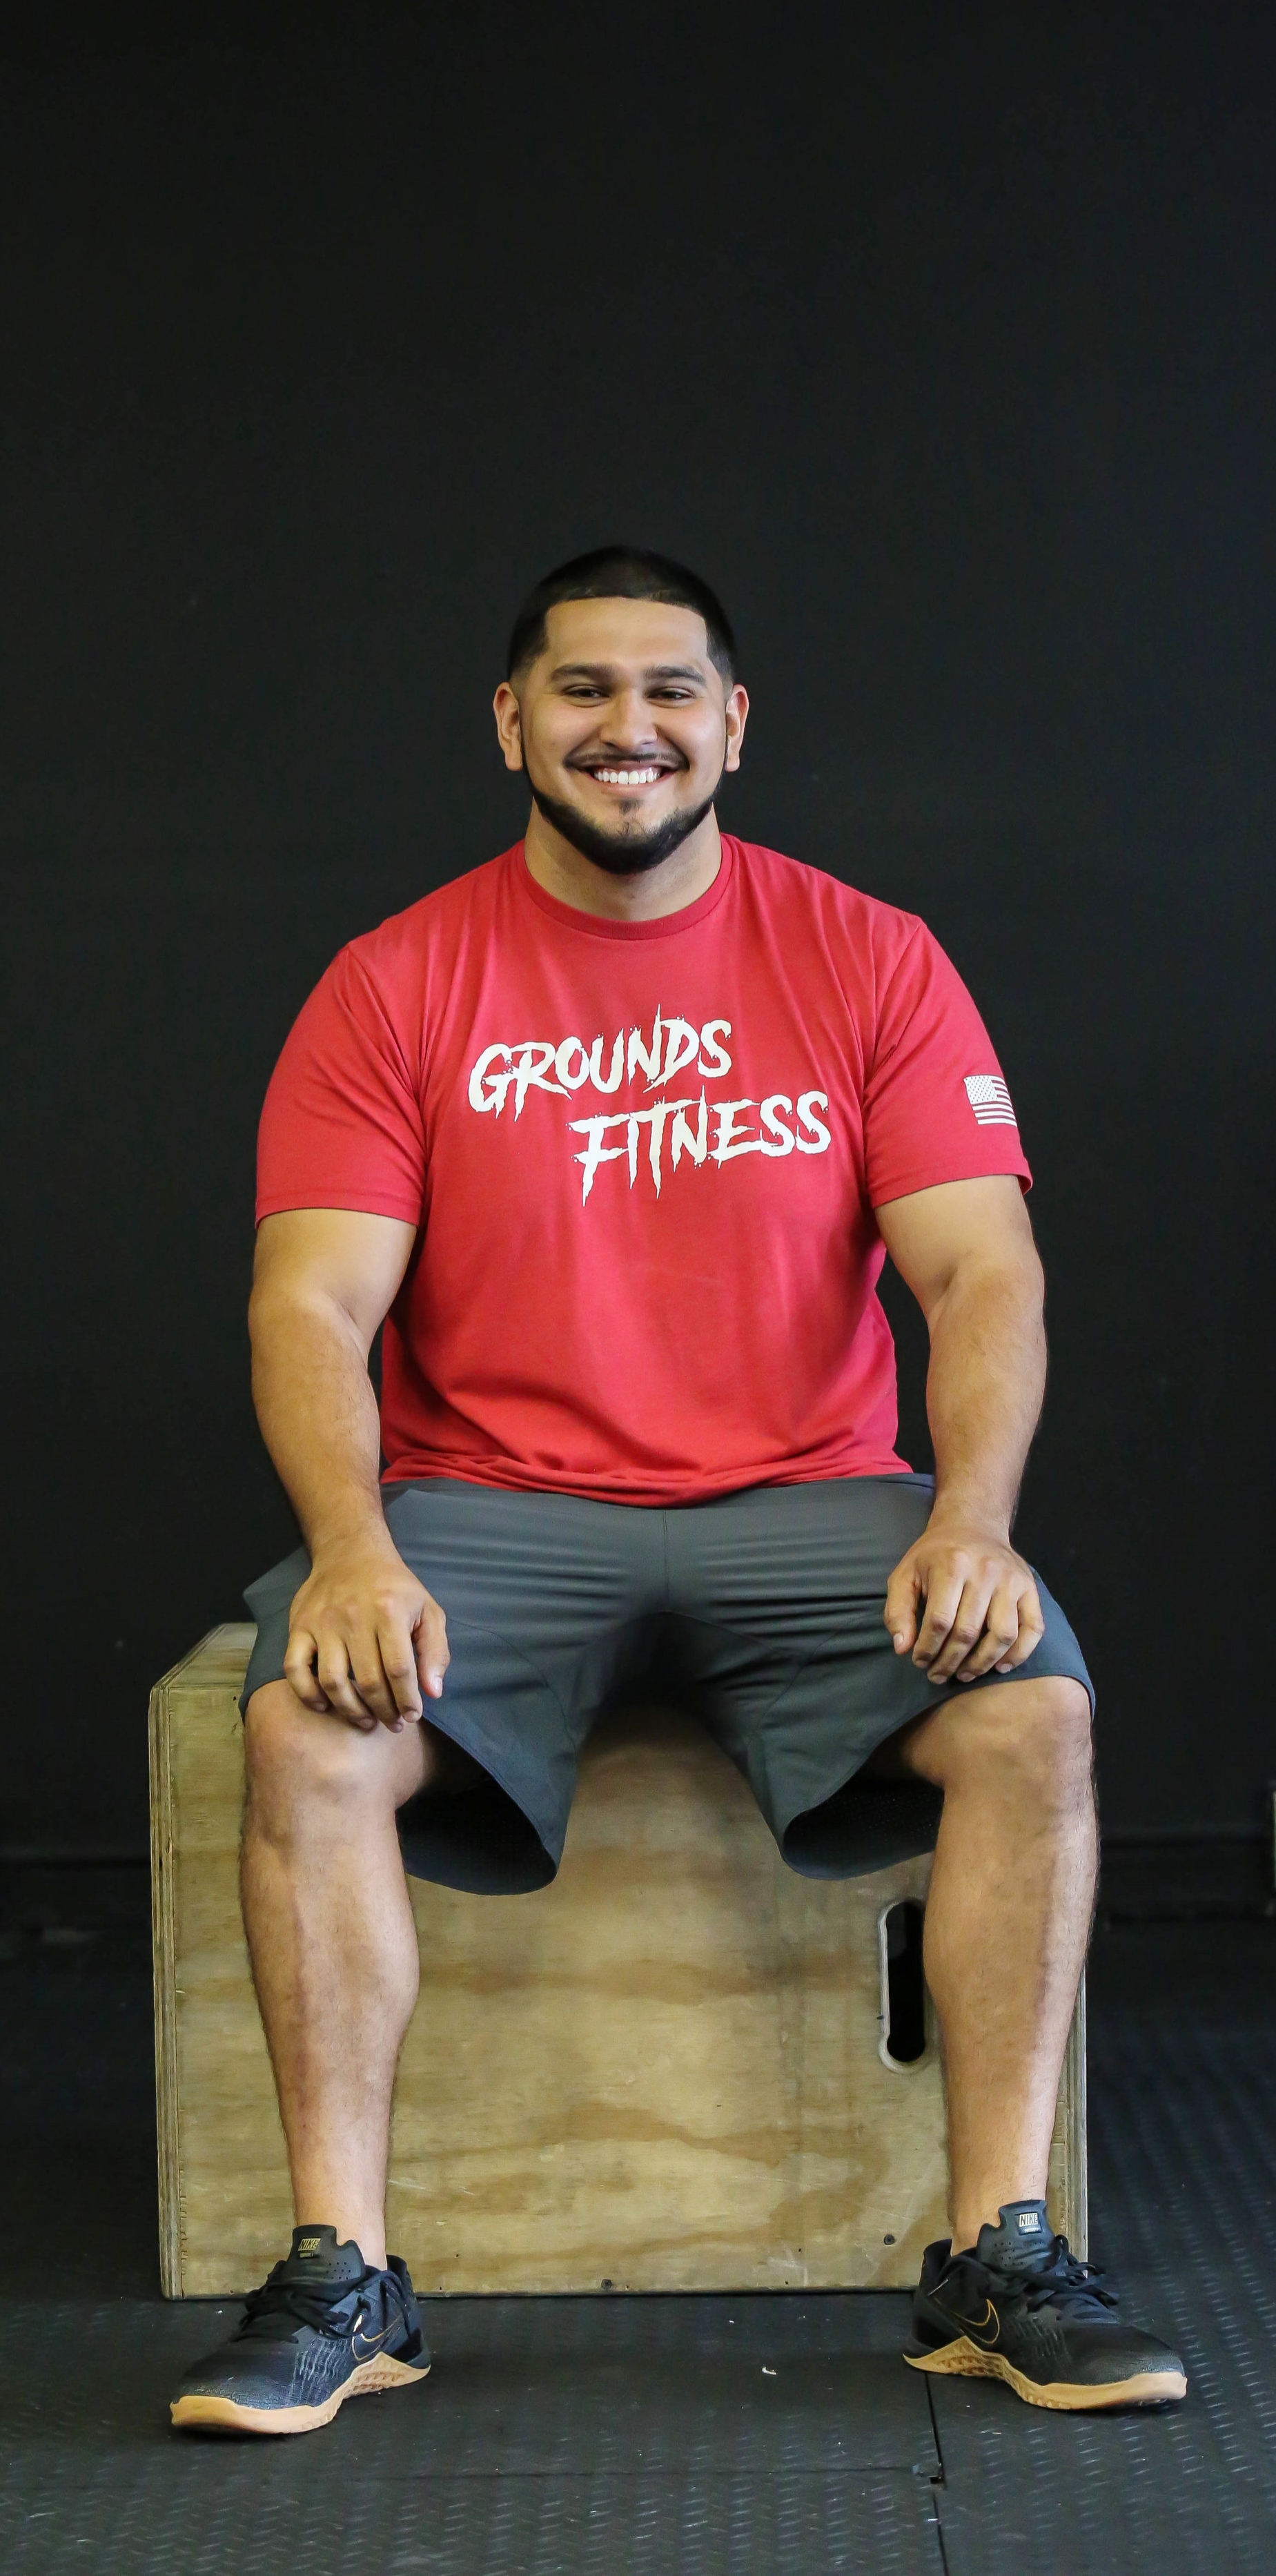 Meet Jose - Jose Carreto, Co-Owner, Head coachWith a love and passion for high intensity training, Jose has been in the competitive universe for over 6 years gaining notice by his peers for being swift while remaining